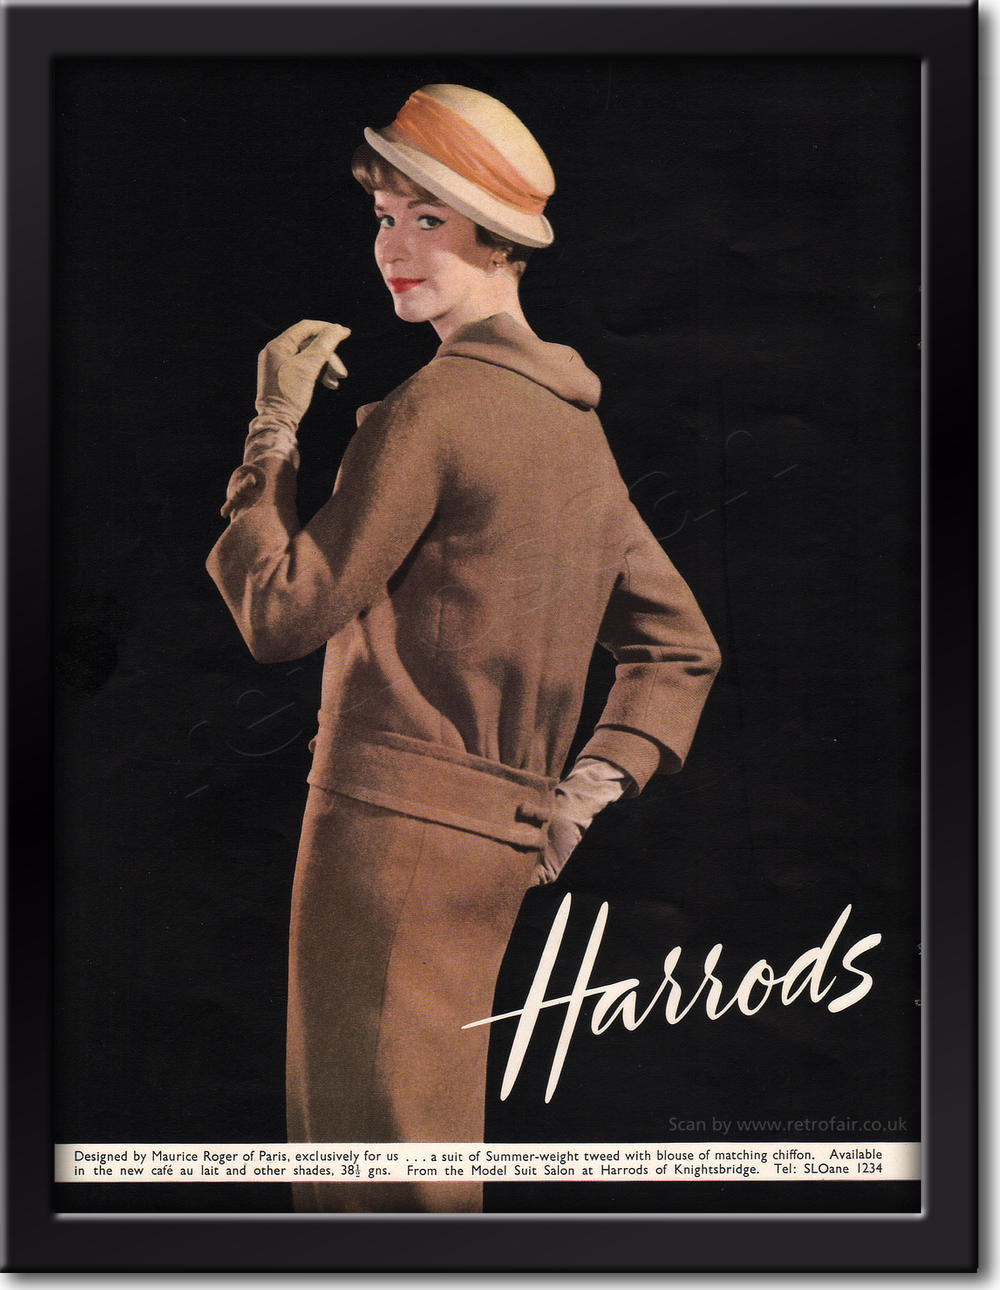 1958 Harrods framed preview